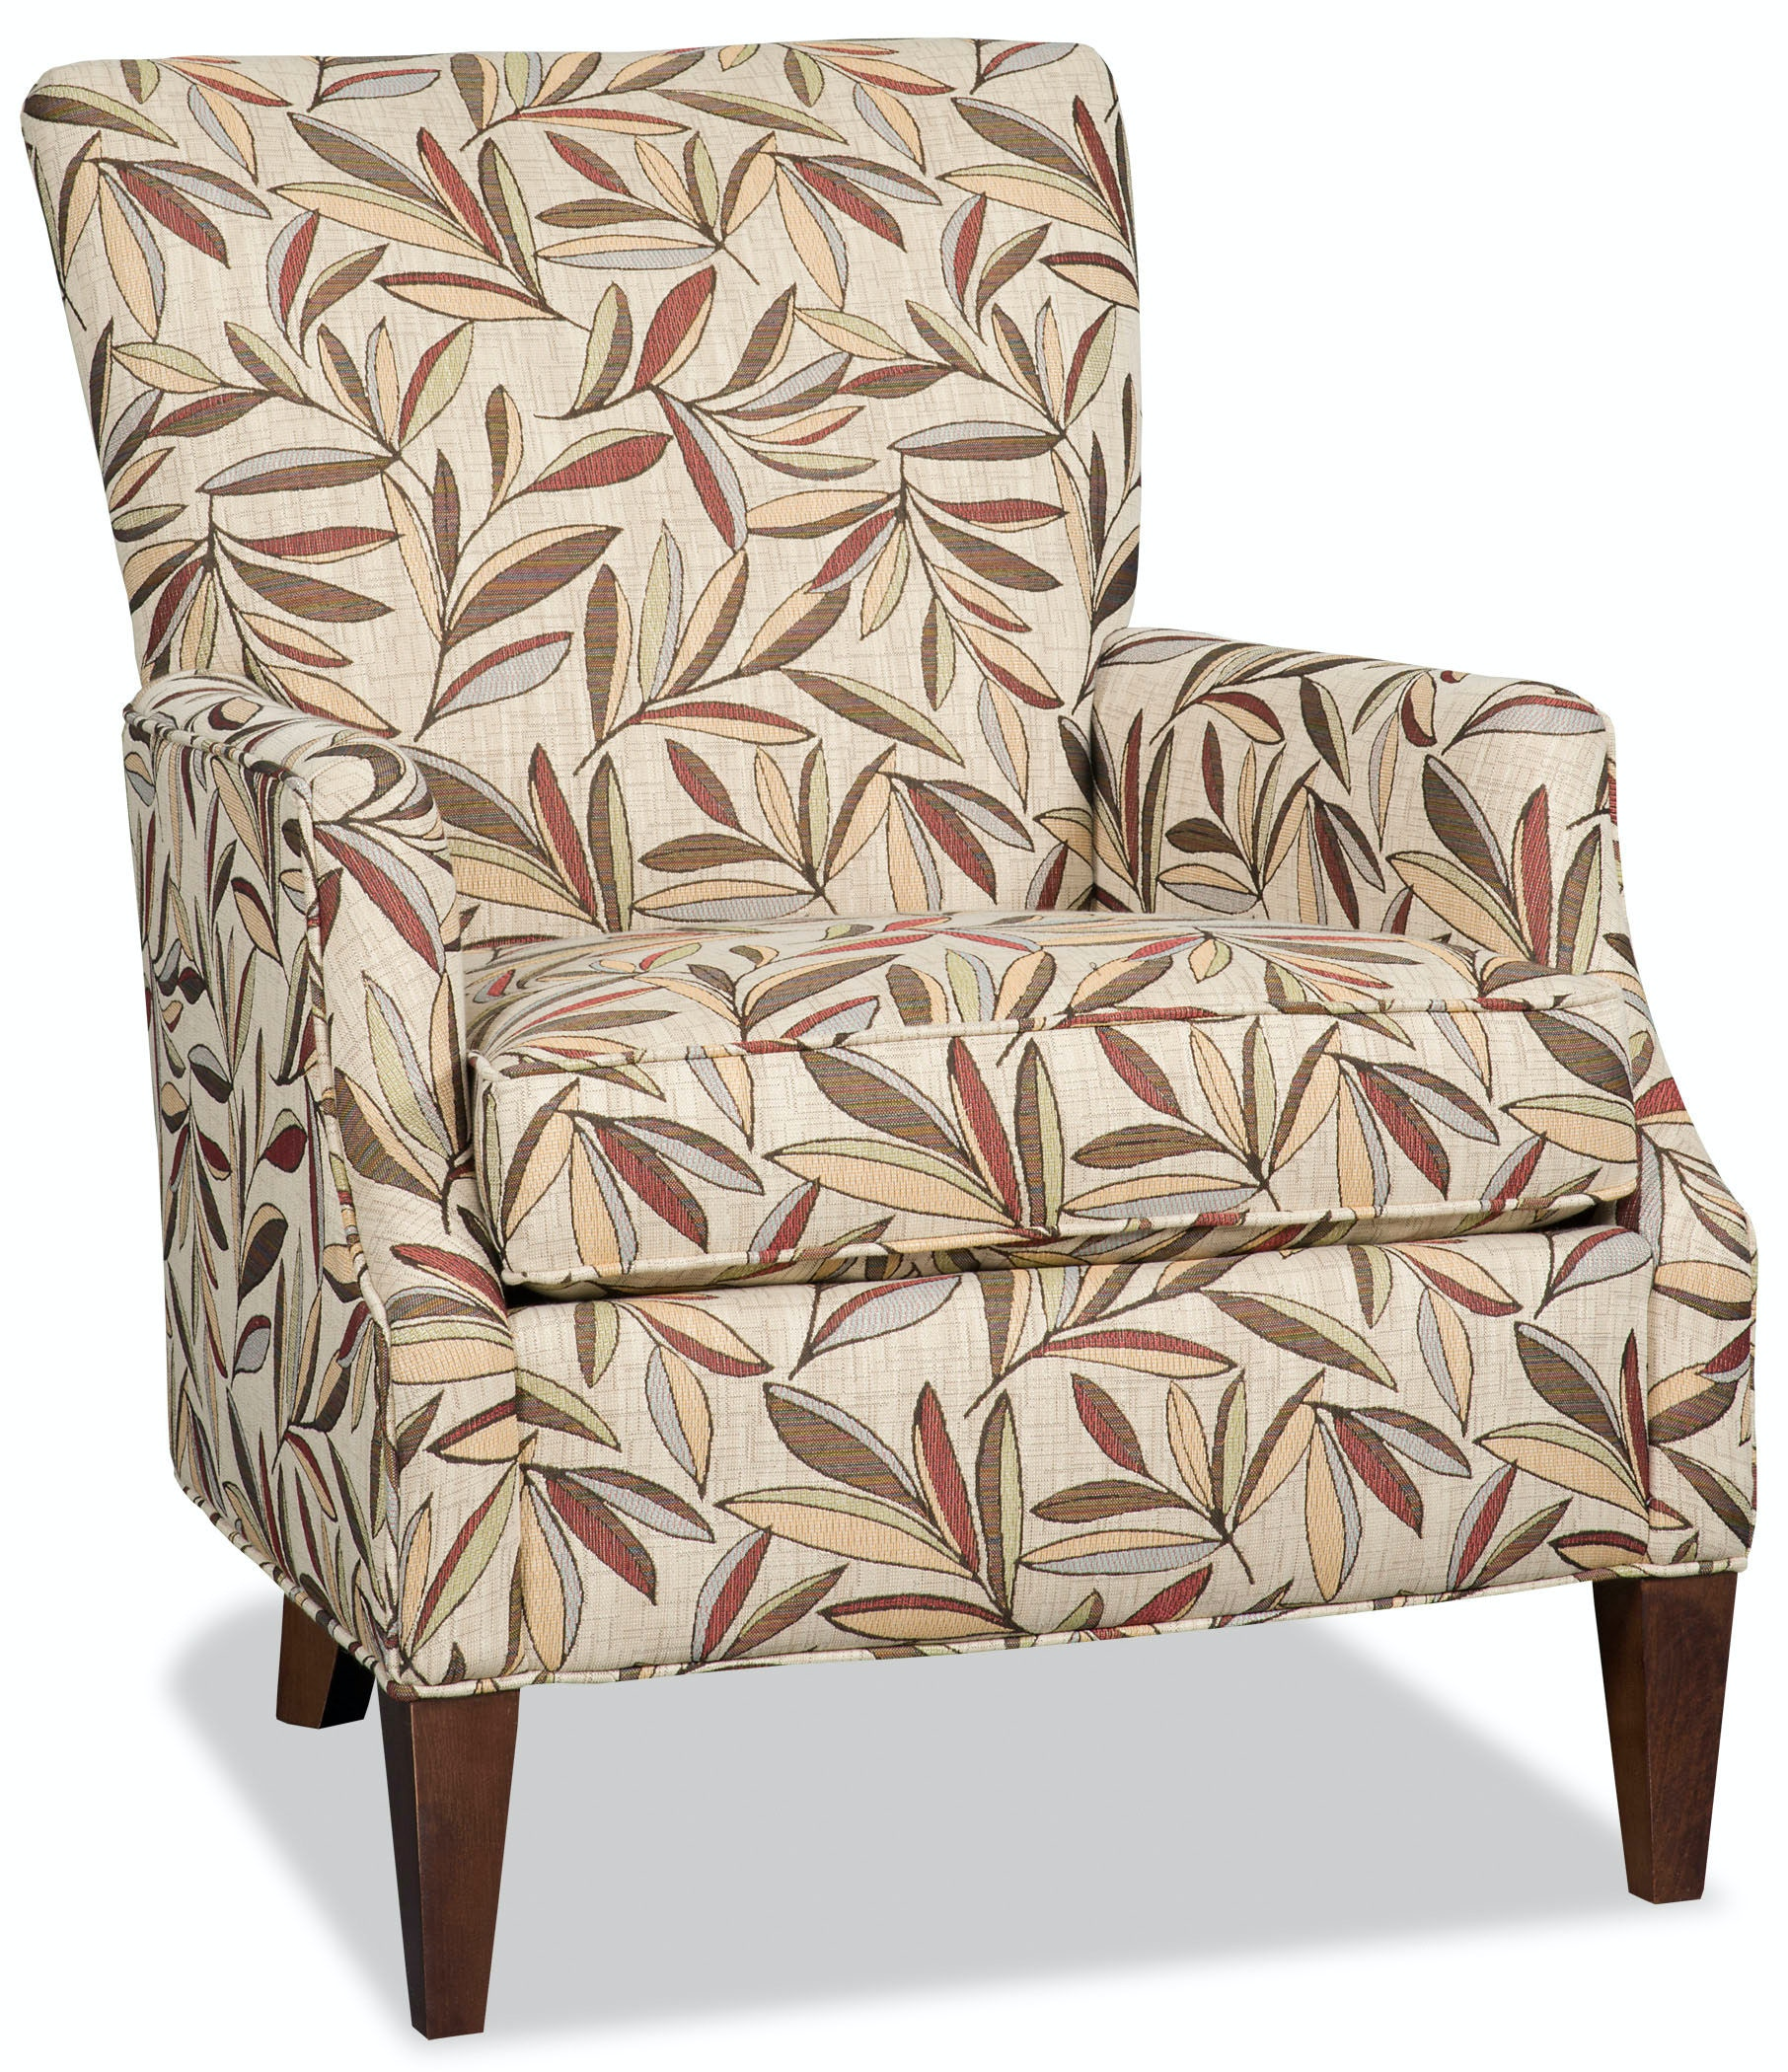 sam s club upholstered chairs cheap comfy moore 1980 asher chair interiors camp hill